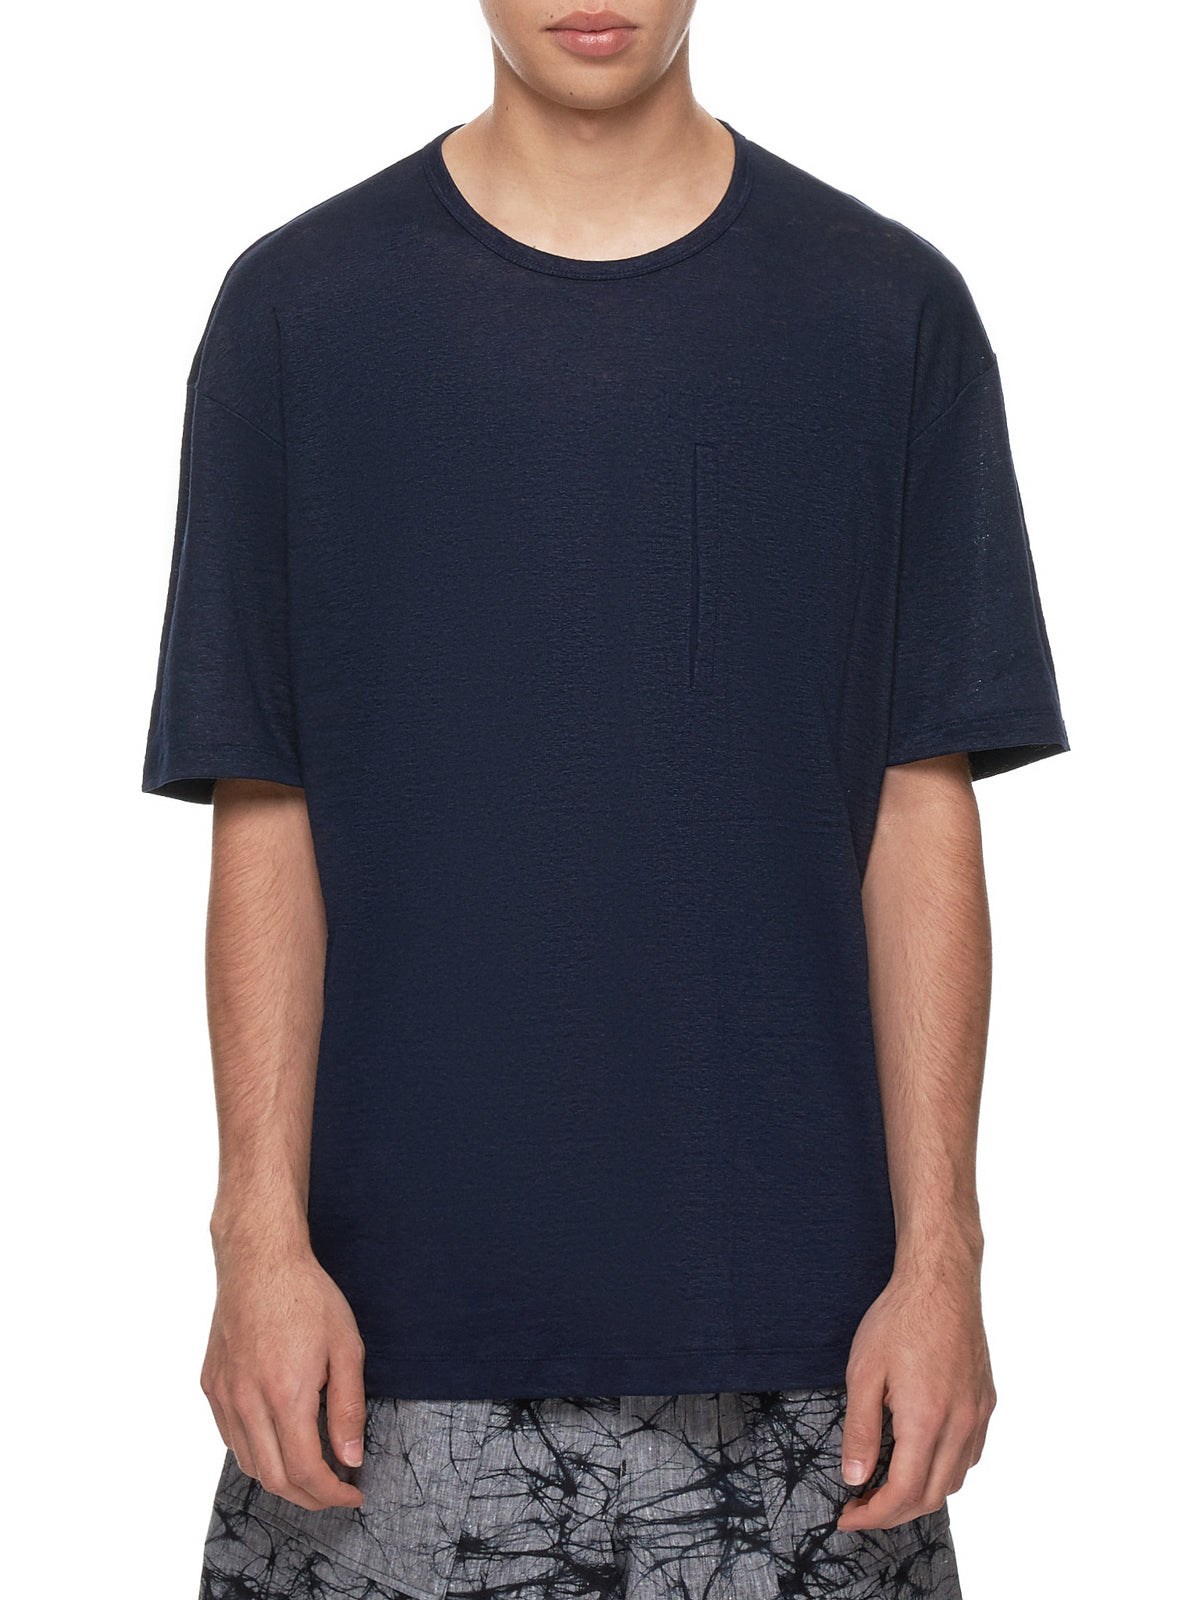 Pocketed T-Shirt (ME96JK136-NAVY)